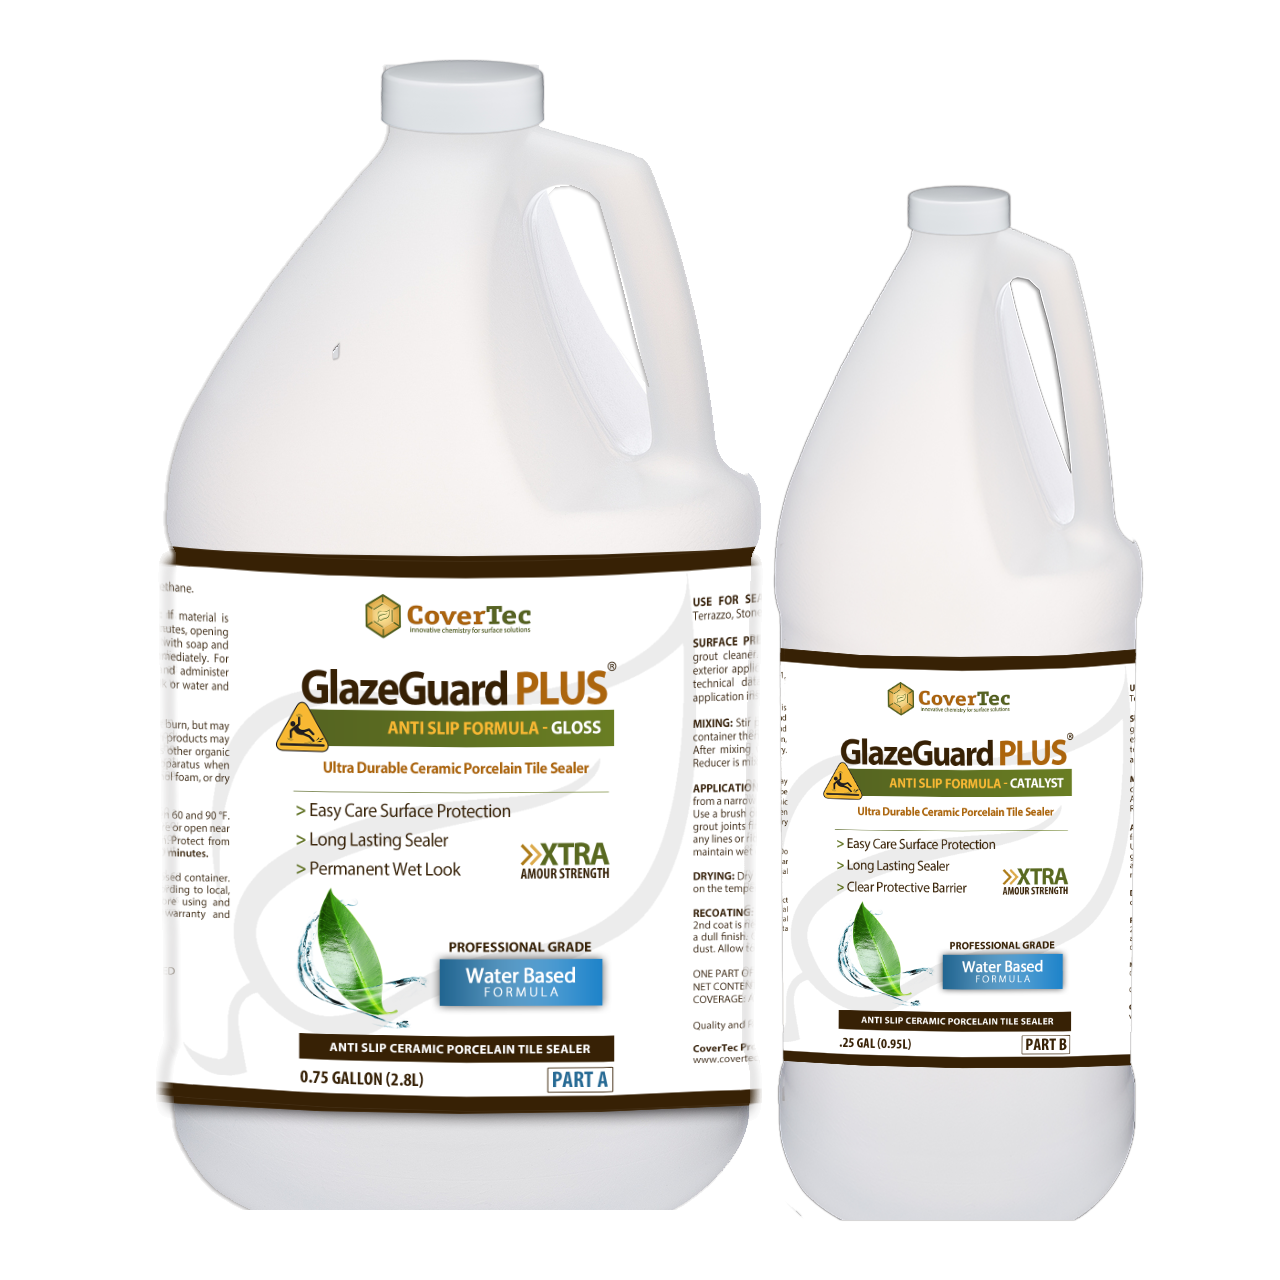 GlazeGuard Plus Anti Slip Floor Coating And Treatment For Ceramic, Porcelain And More